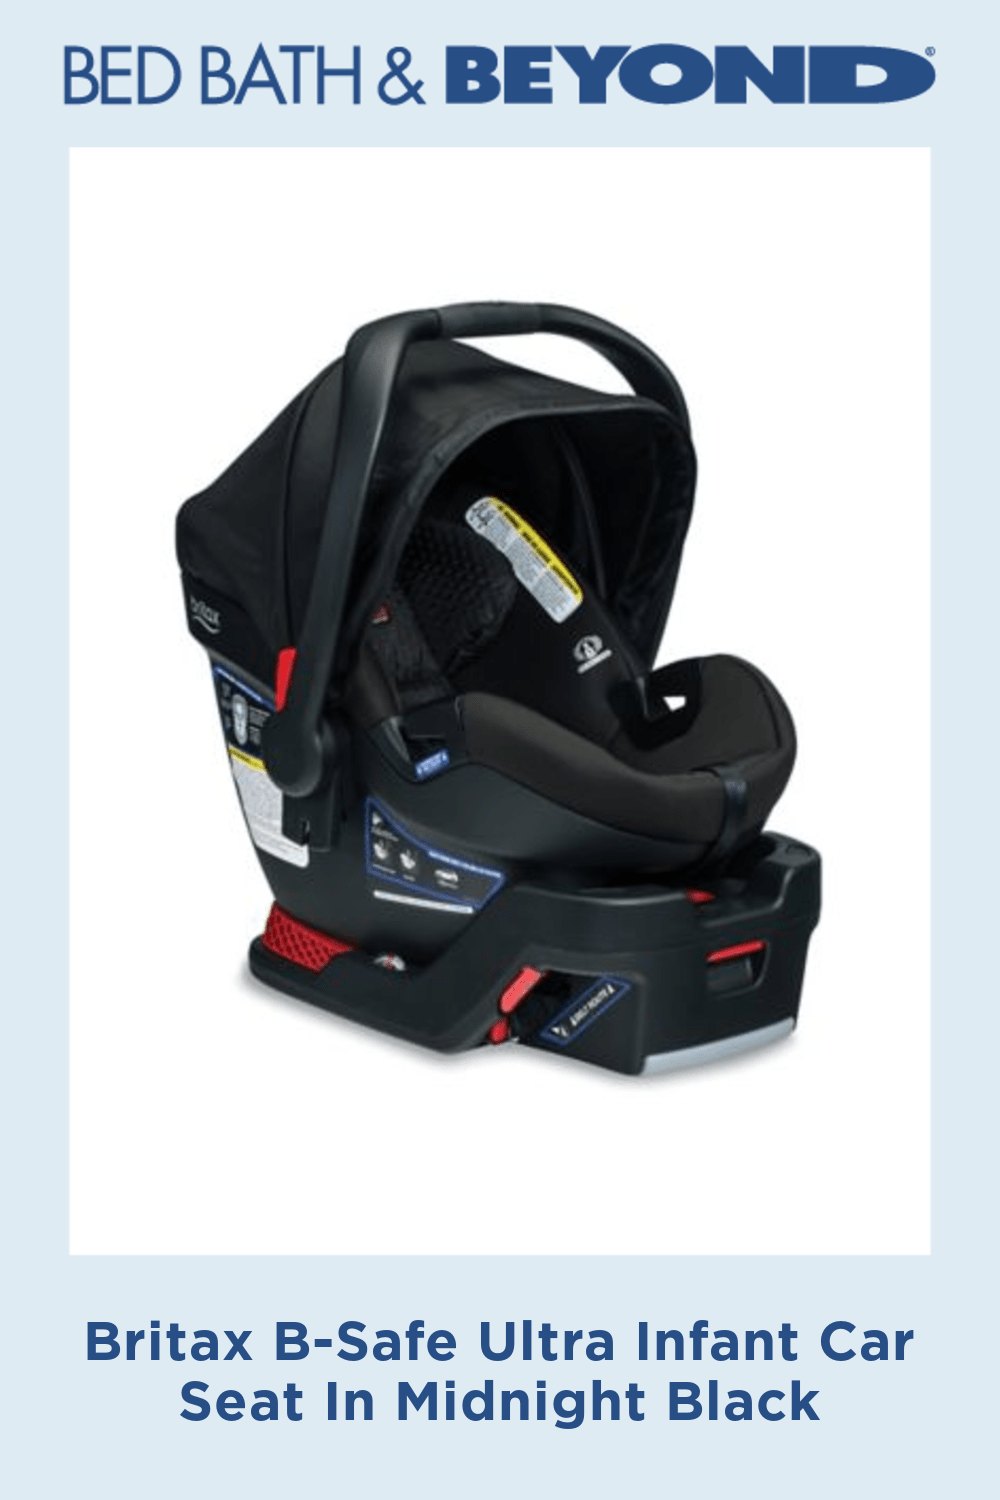 Britax B-Safe Ultra Infant Car Seat In Midnight Black